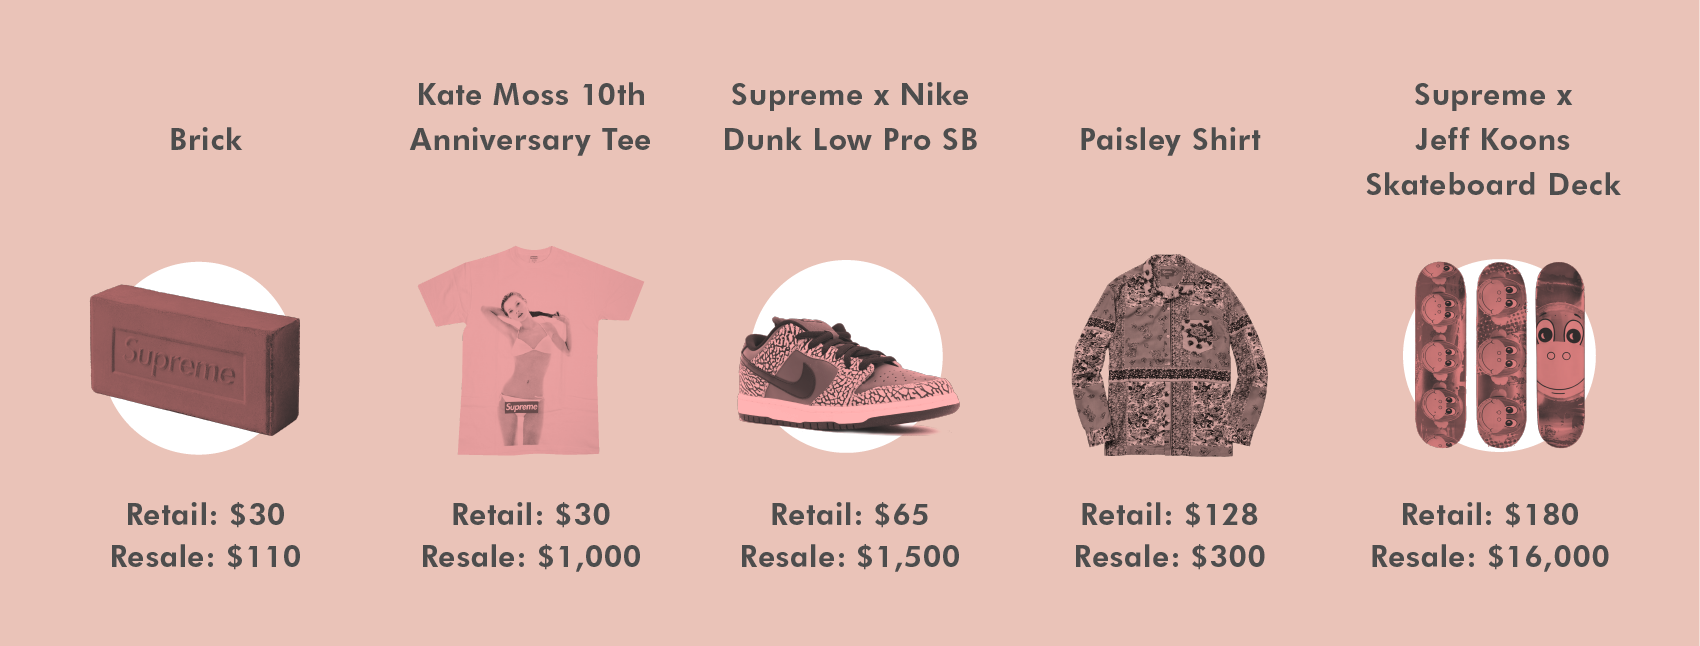 Screenshot showing a variety of items by Supreme and their retail prices/street values